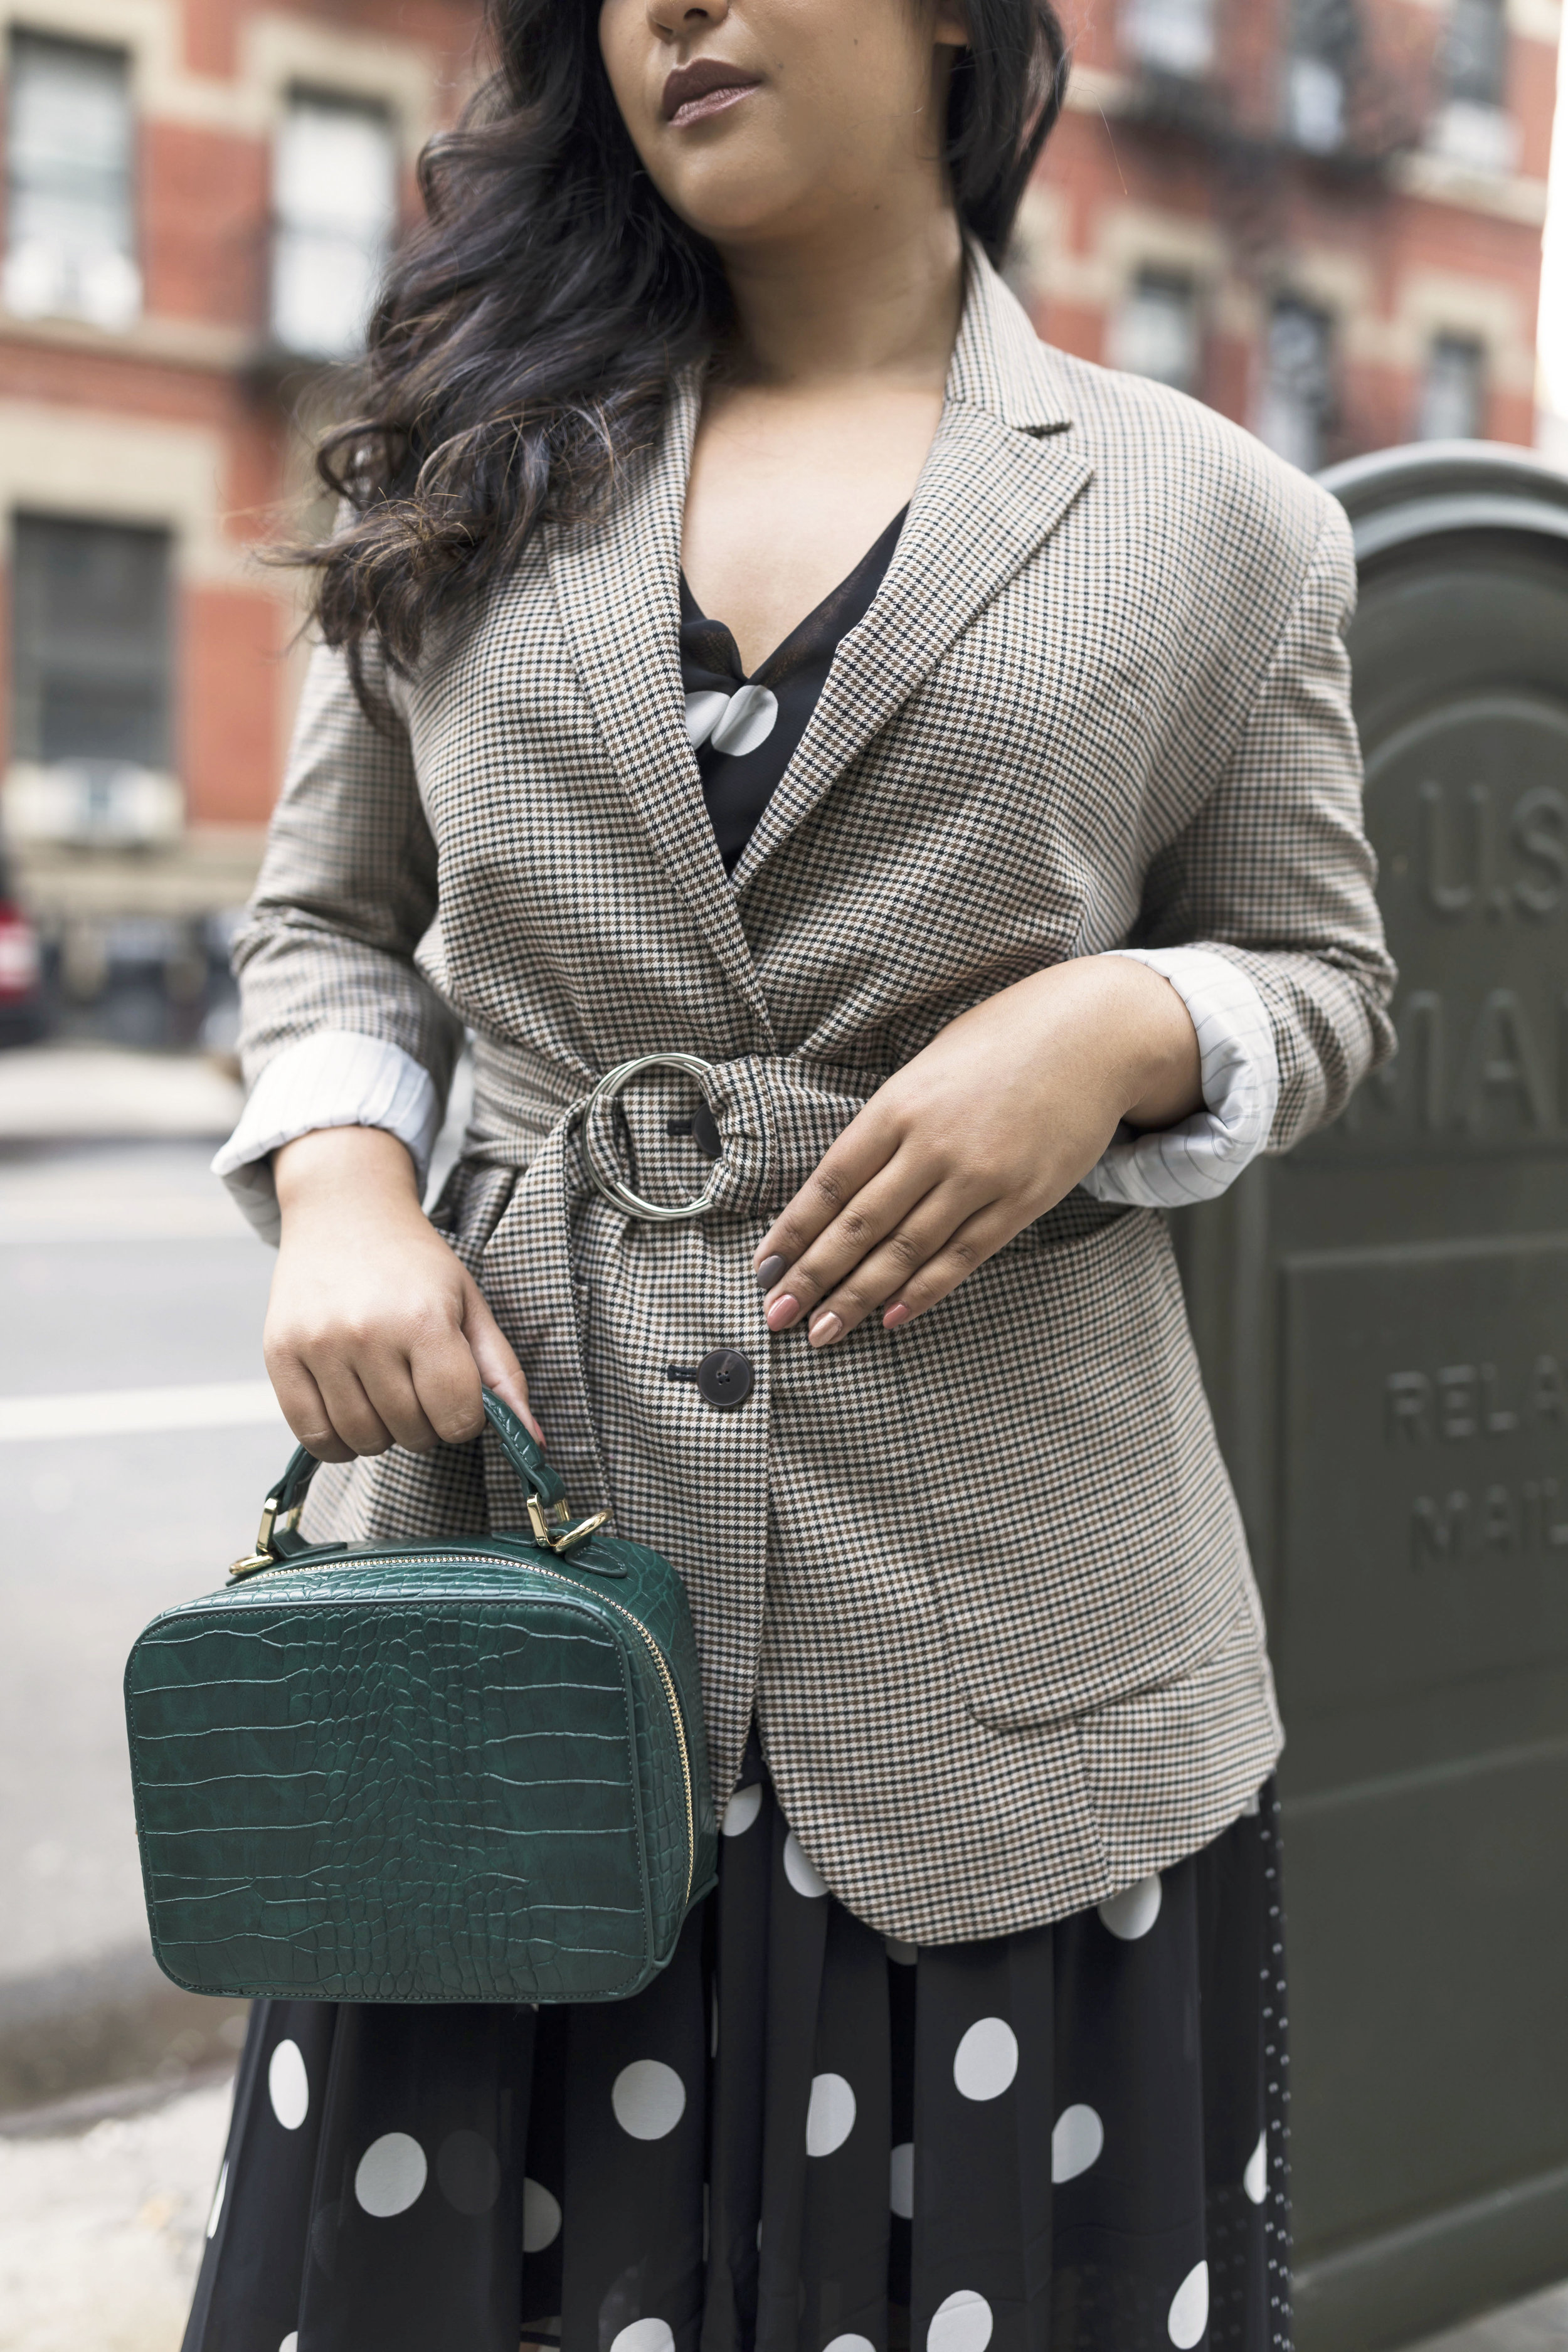 Krity S x Fall Trends x Plaid and Polka Dots5.jpg